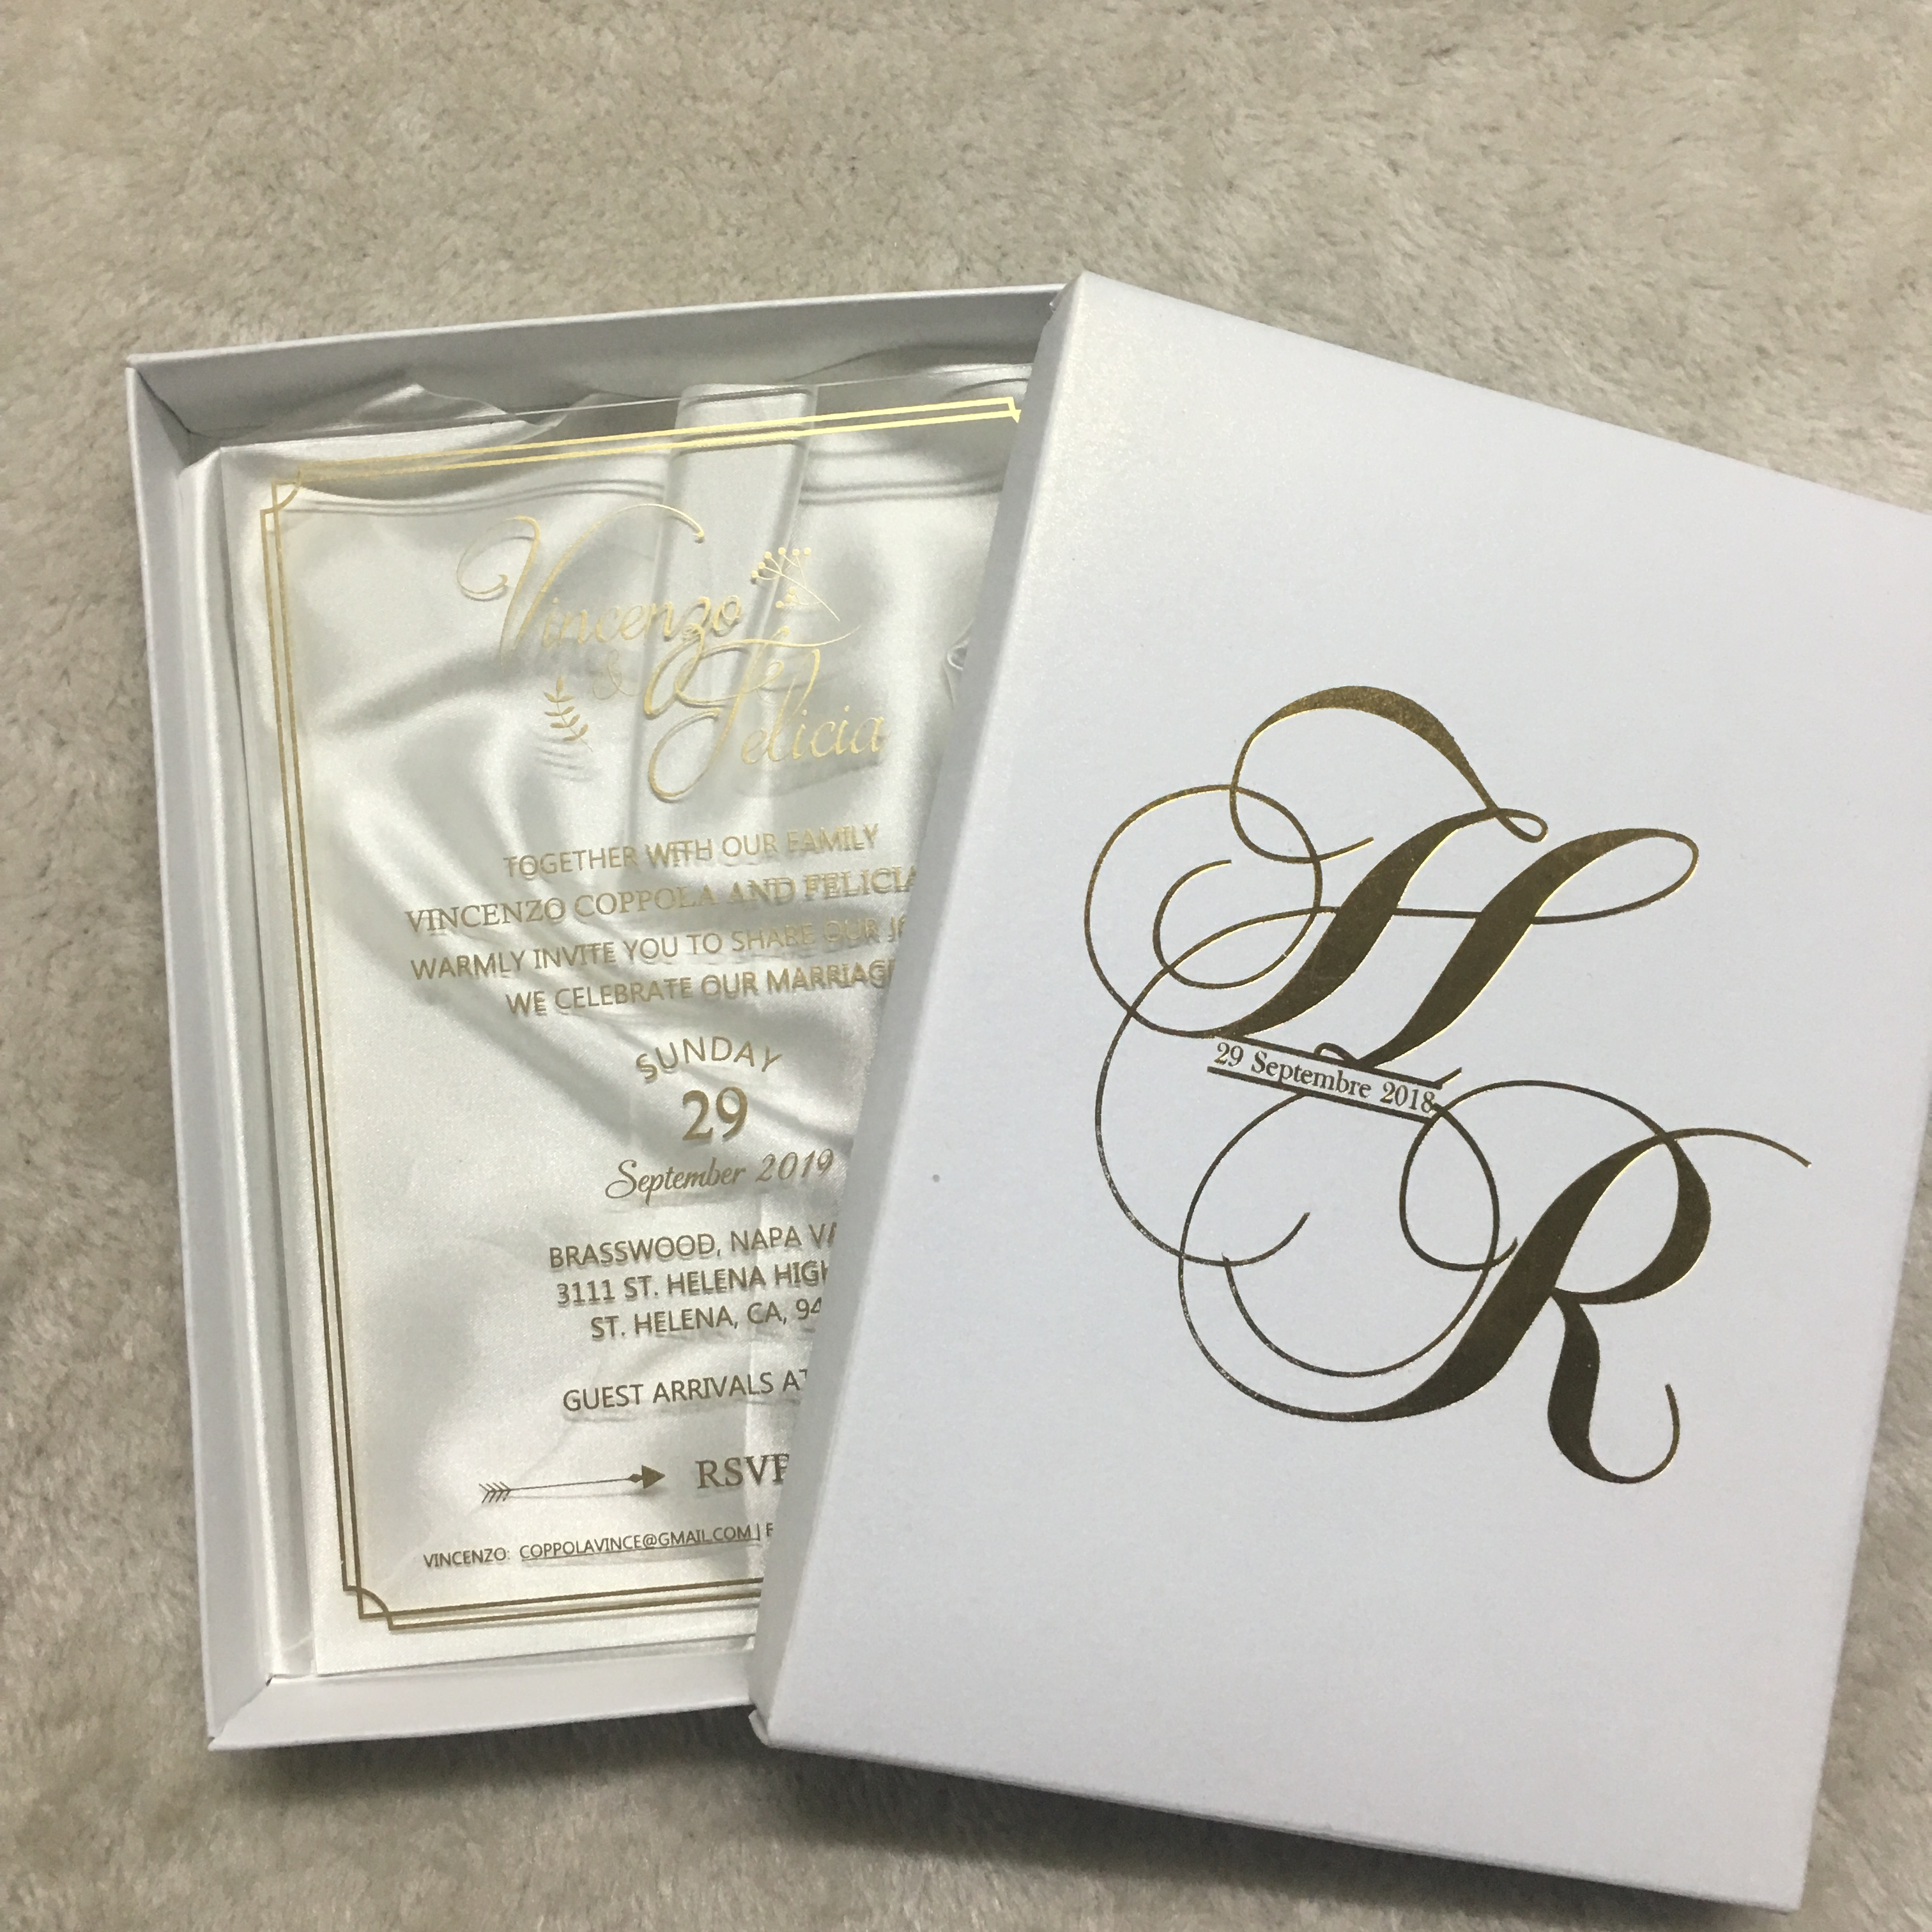 10pcs Invitation Card With Box Wedding Souvenir Decoration Customize Cards Invitations